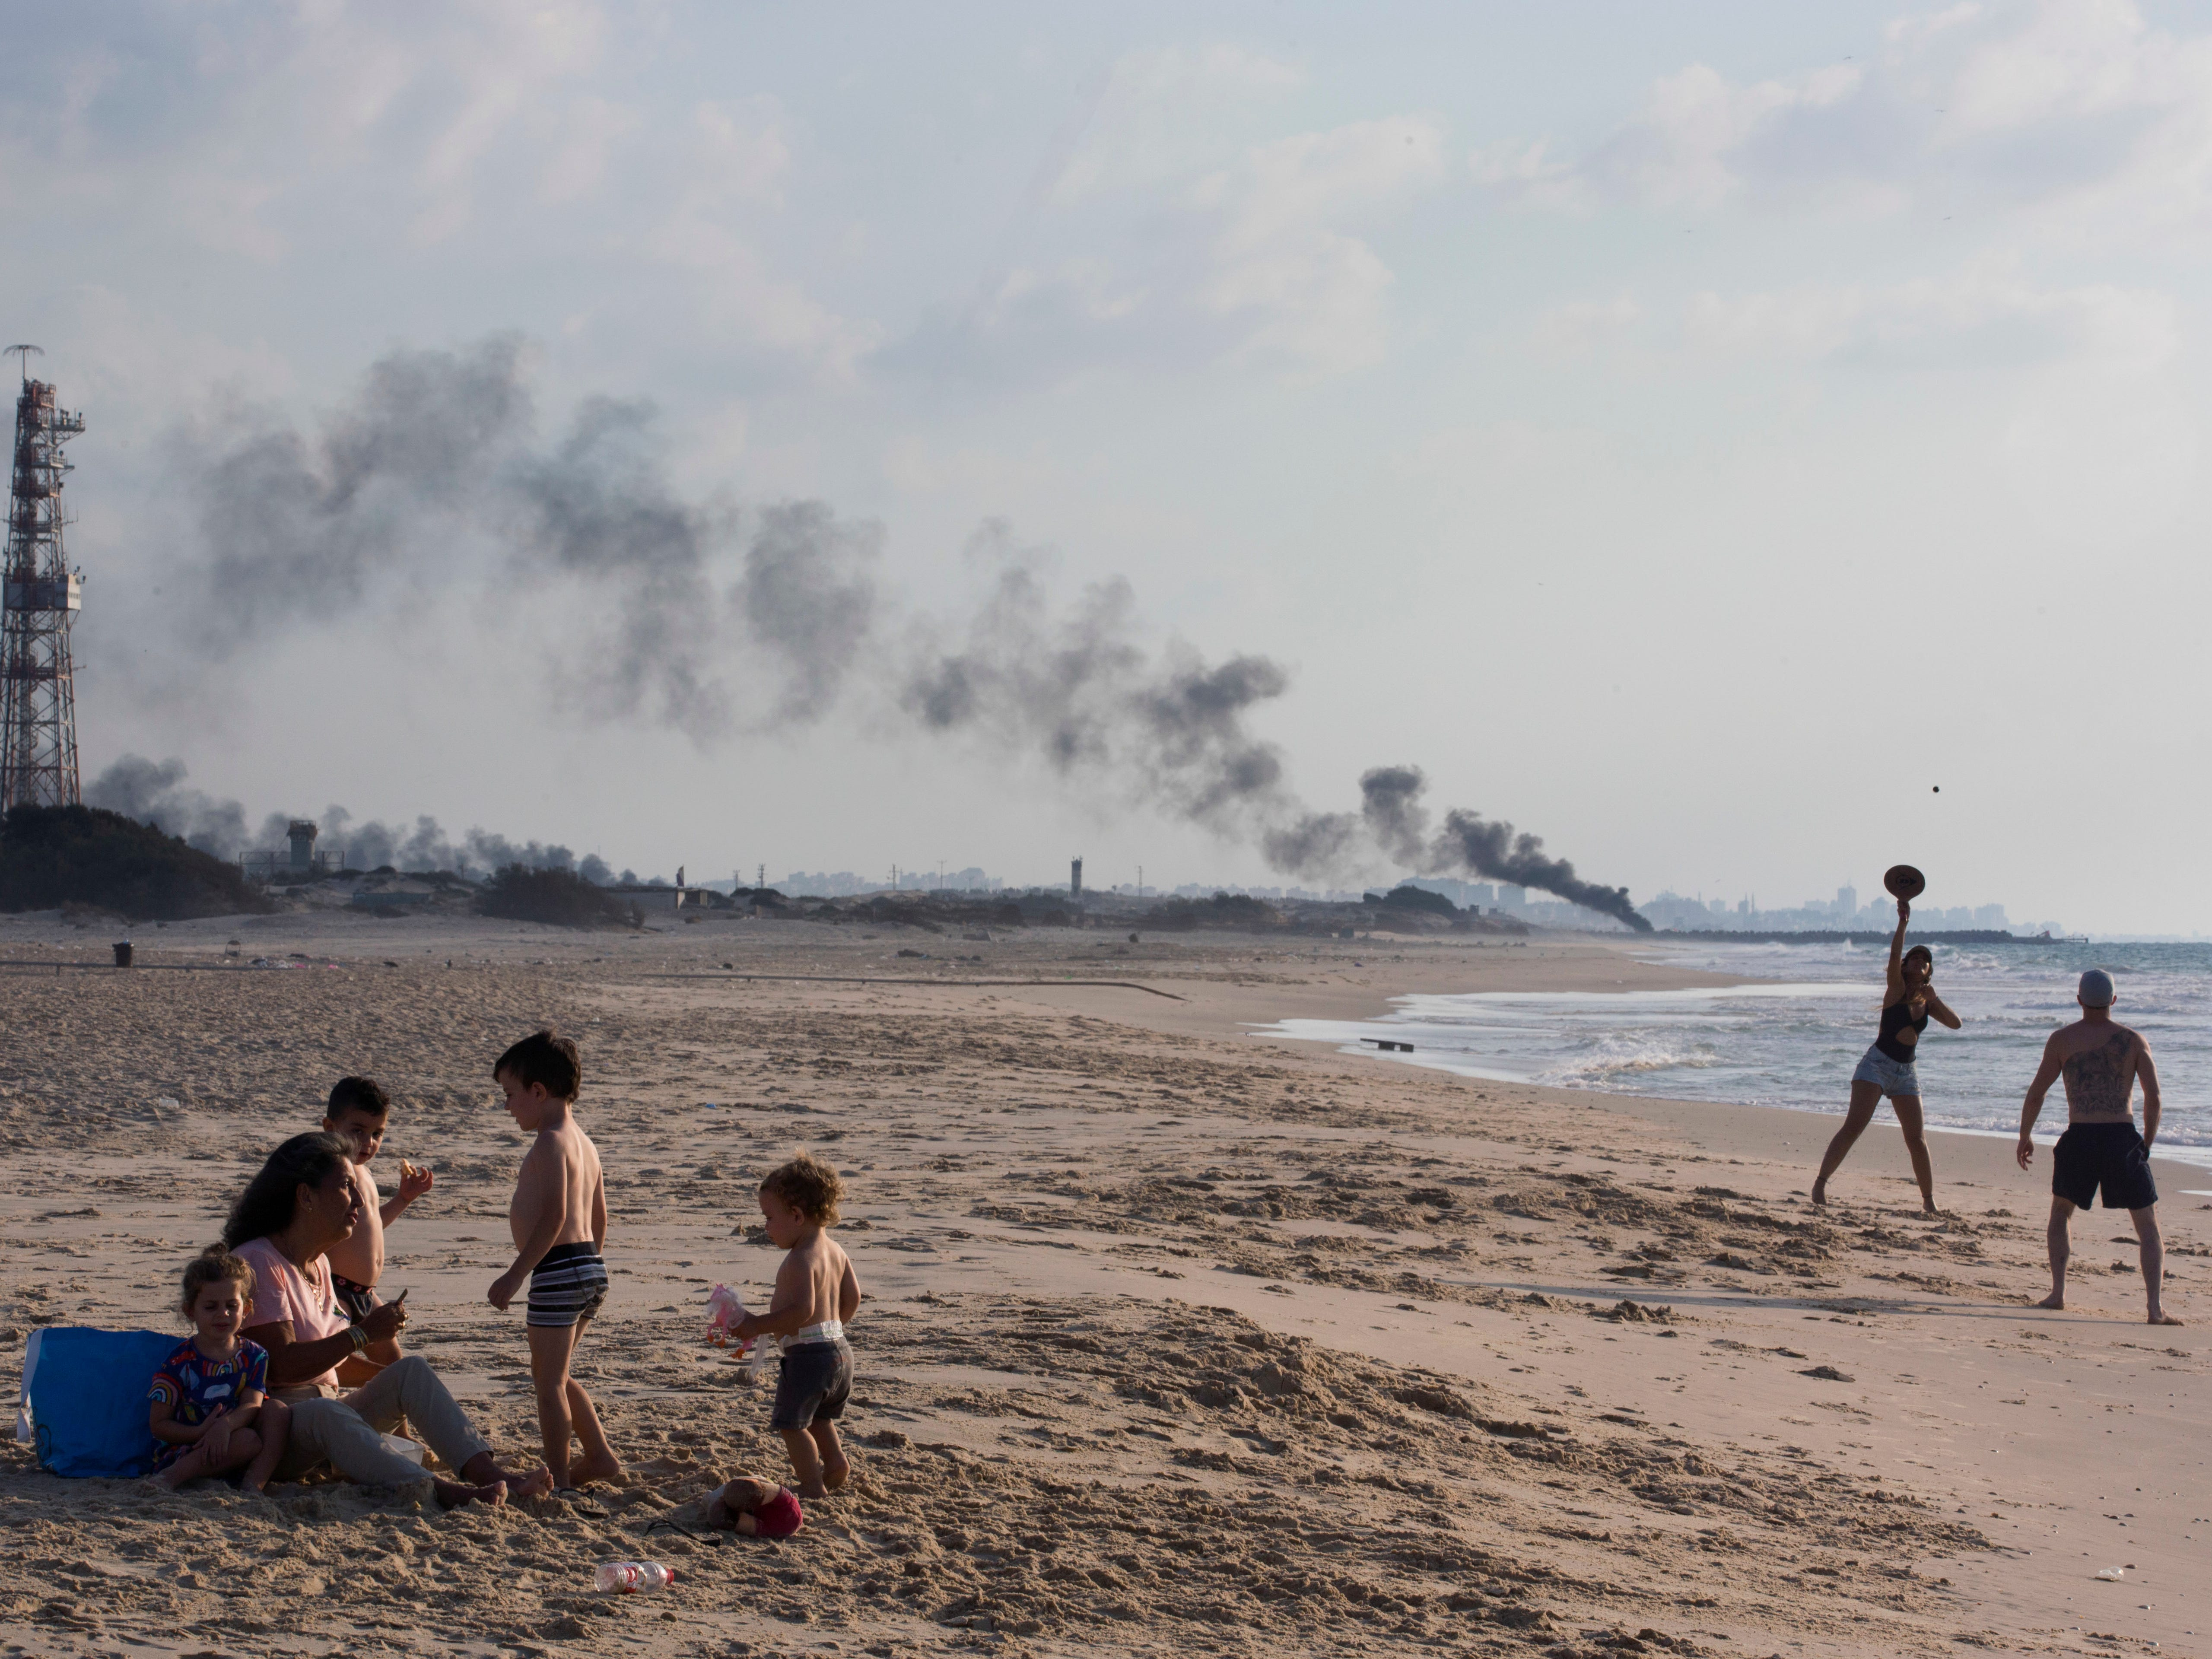 Israelis enjoy the day in Zikim beach, near kibbutz Zikim, on the Israel and Gaza border, as in the background black smoke rises from the tires set on fire by Palestinian protesters near Beit Lahiya, northern Gaza Strip, Monday, Oct. 8, 2018.